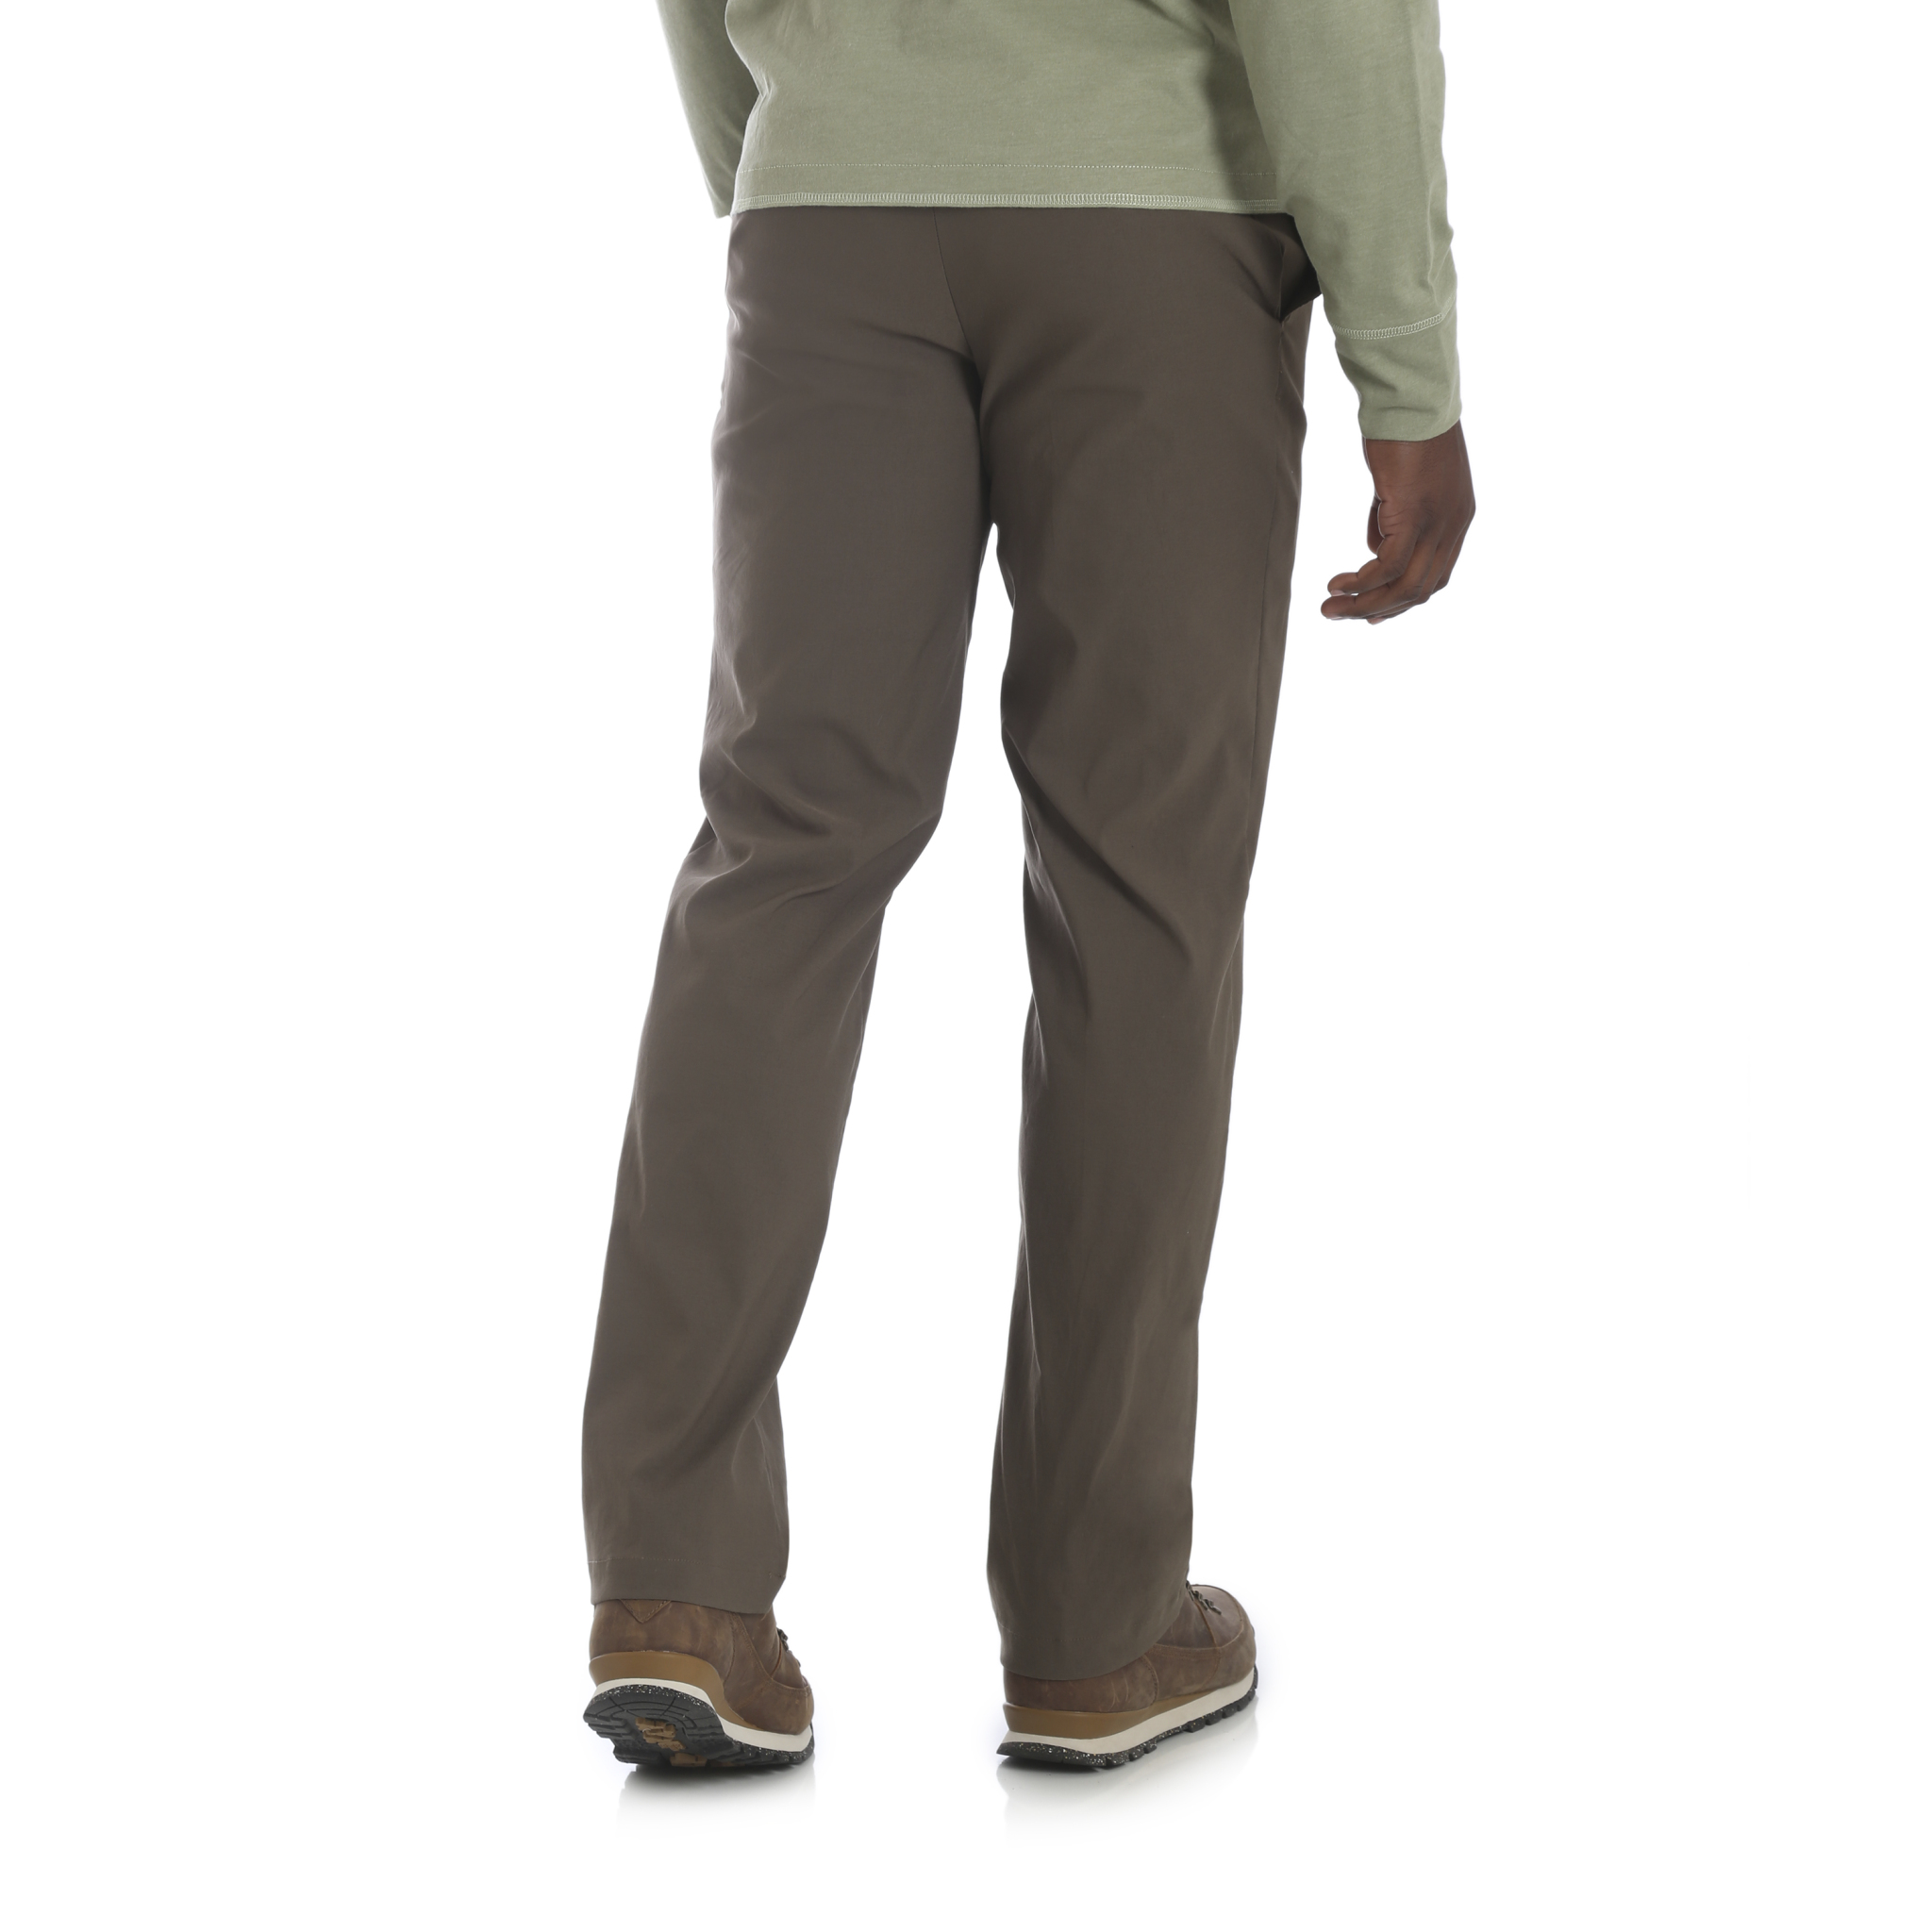 Wrangler-NEW-Solid-Men-039-s-Performance-Series-Outdoor-Comfort-Straight-Leg-Pants thumbnail 9